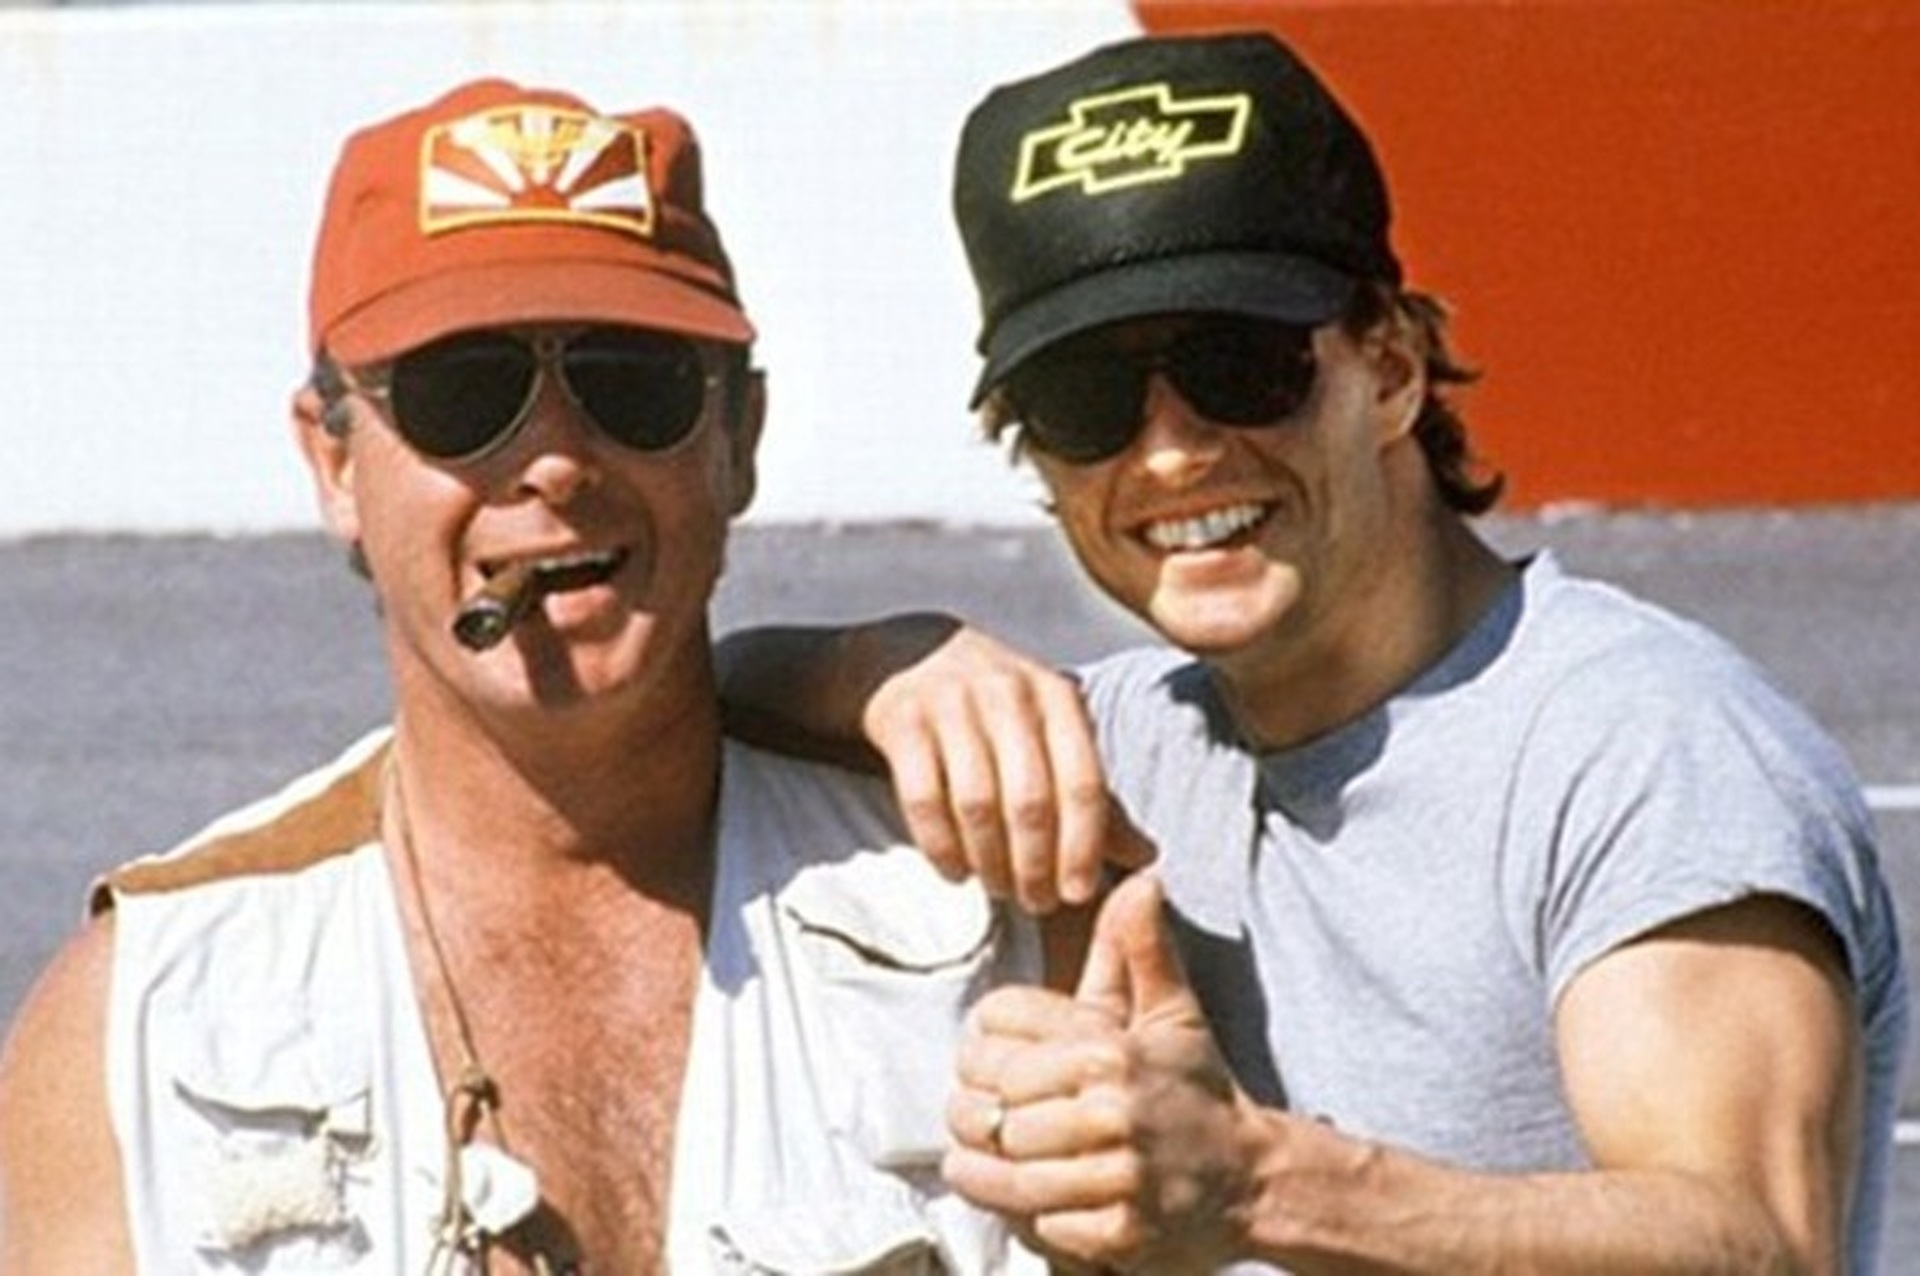 Tony Scott's Contributions to the Automotive World